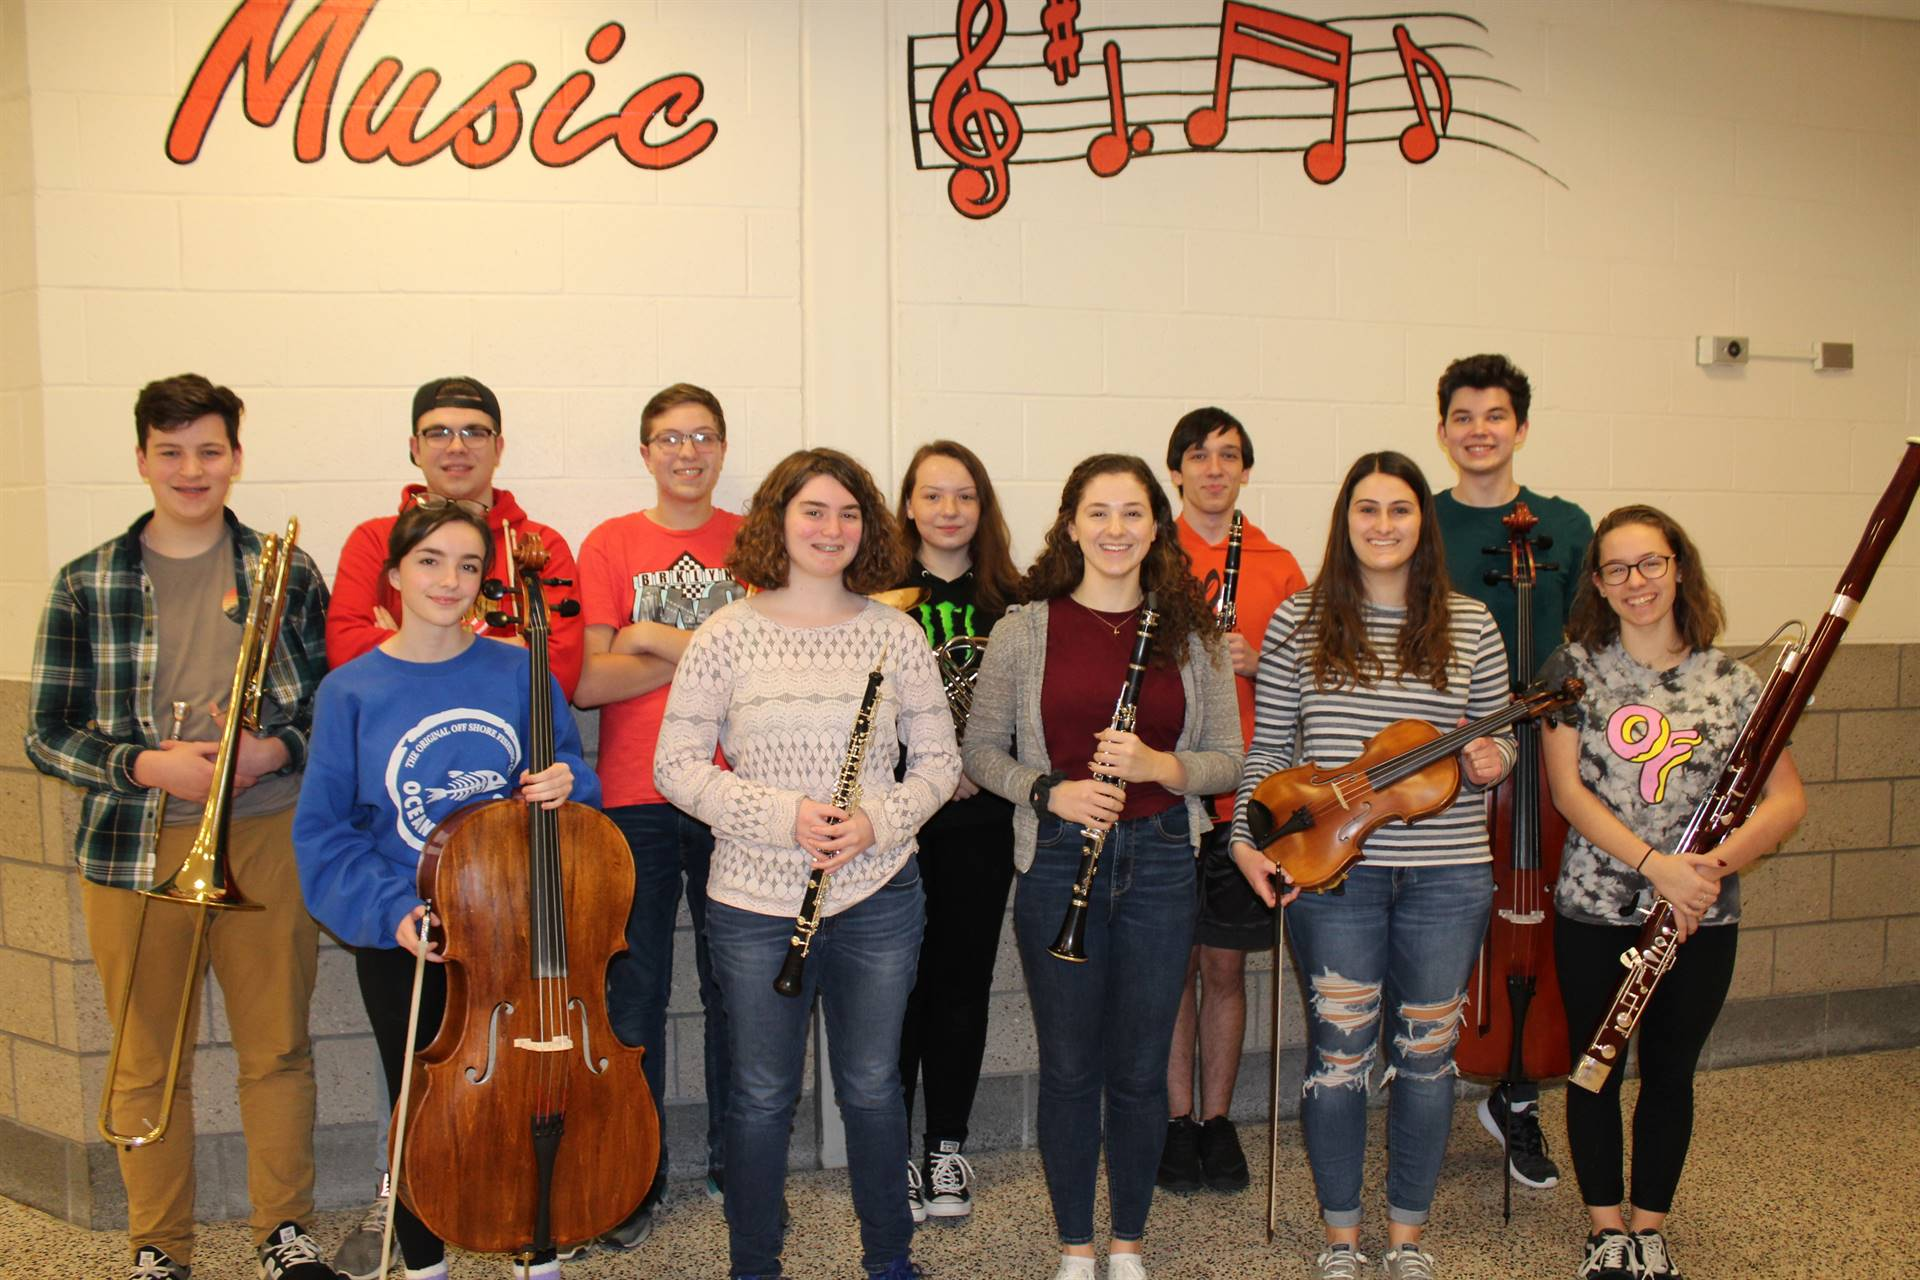 The 11 District Orchestra musicians